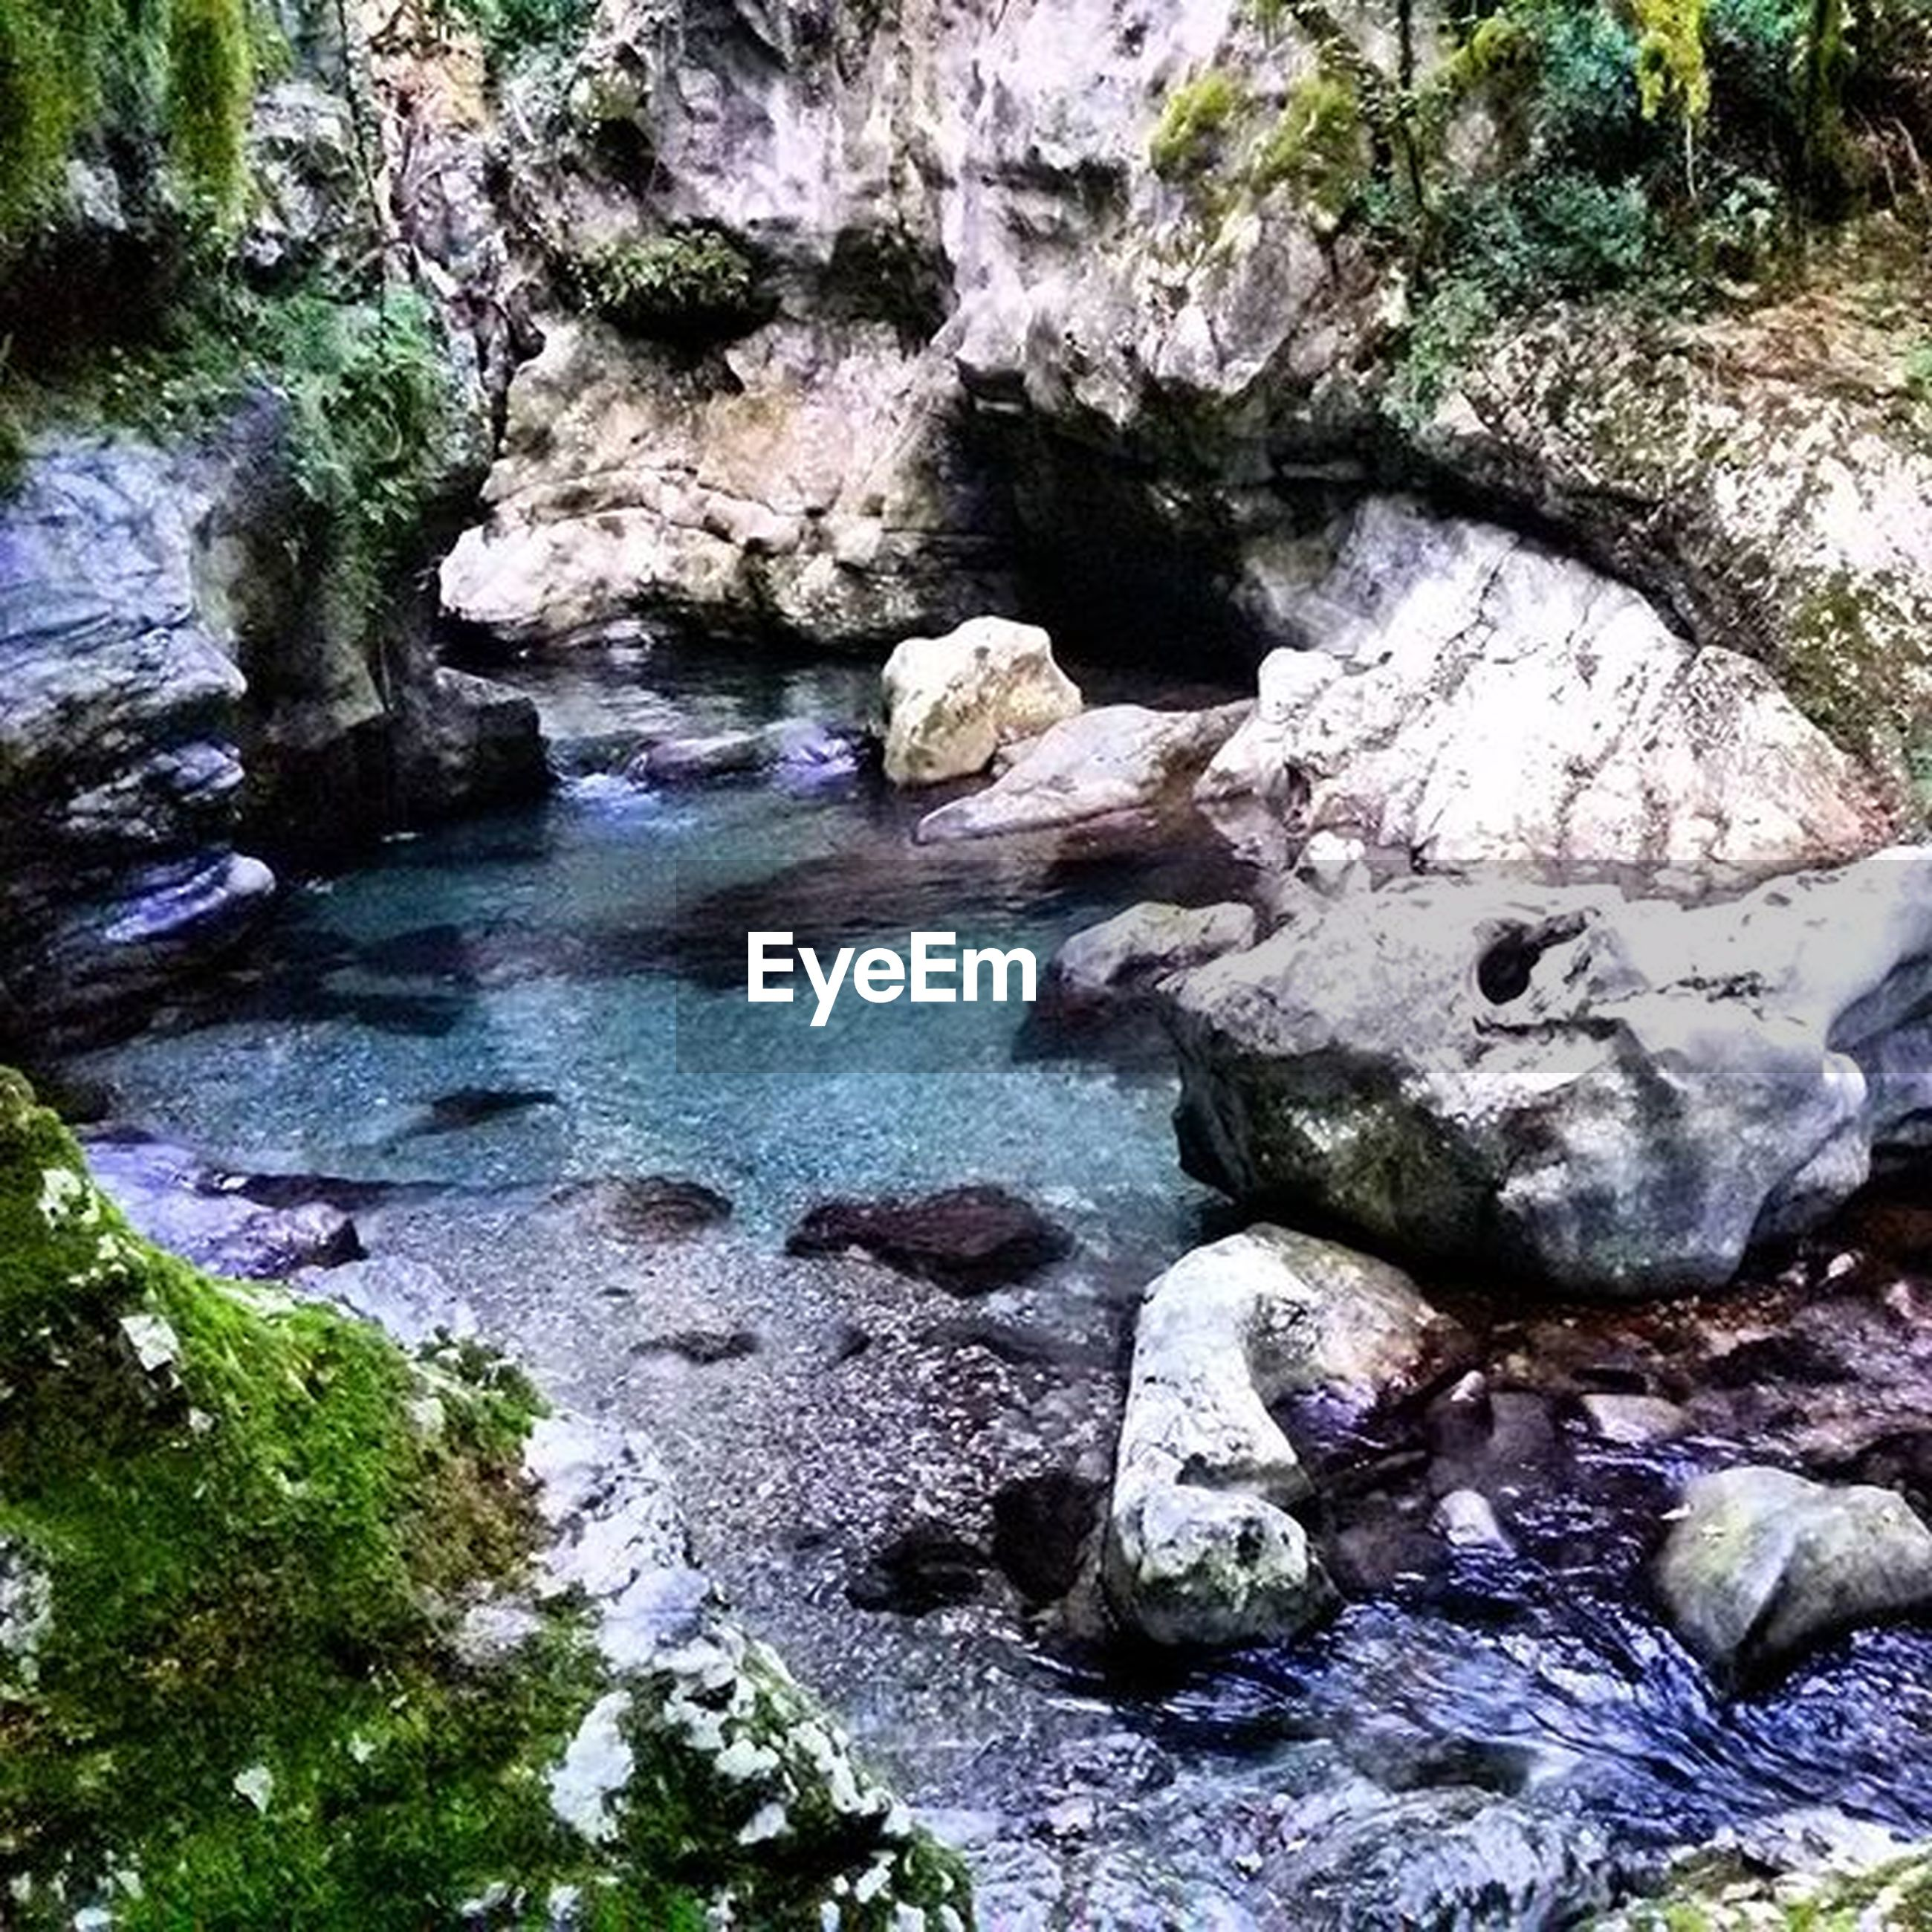 water, rock - object, stream, flowing water, rock formation, nature, beauty in nature, forest, scenics, rock, river, tranquility, flowing, motion, waterfall, tranquil scene, tree, day, stone, outdoors